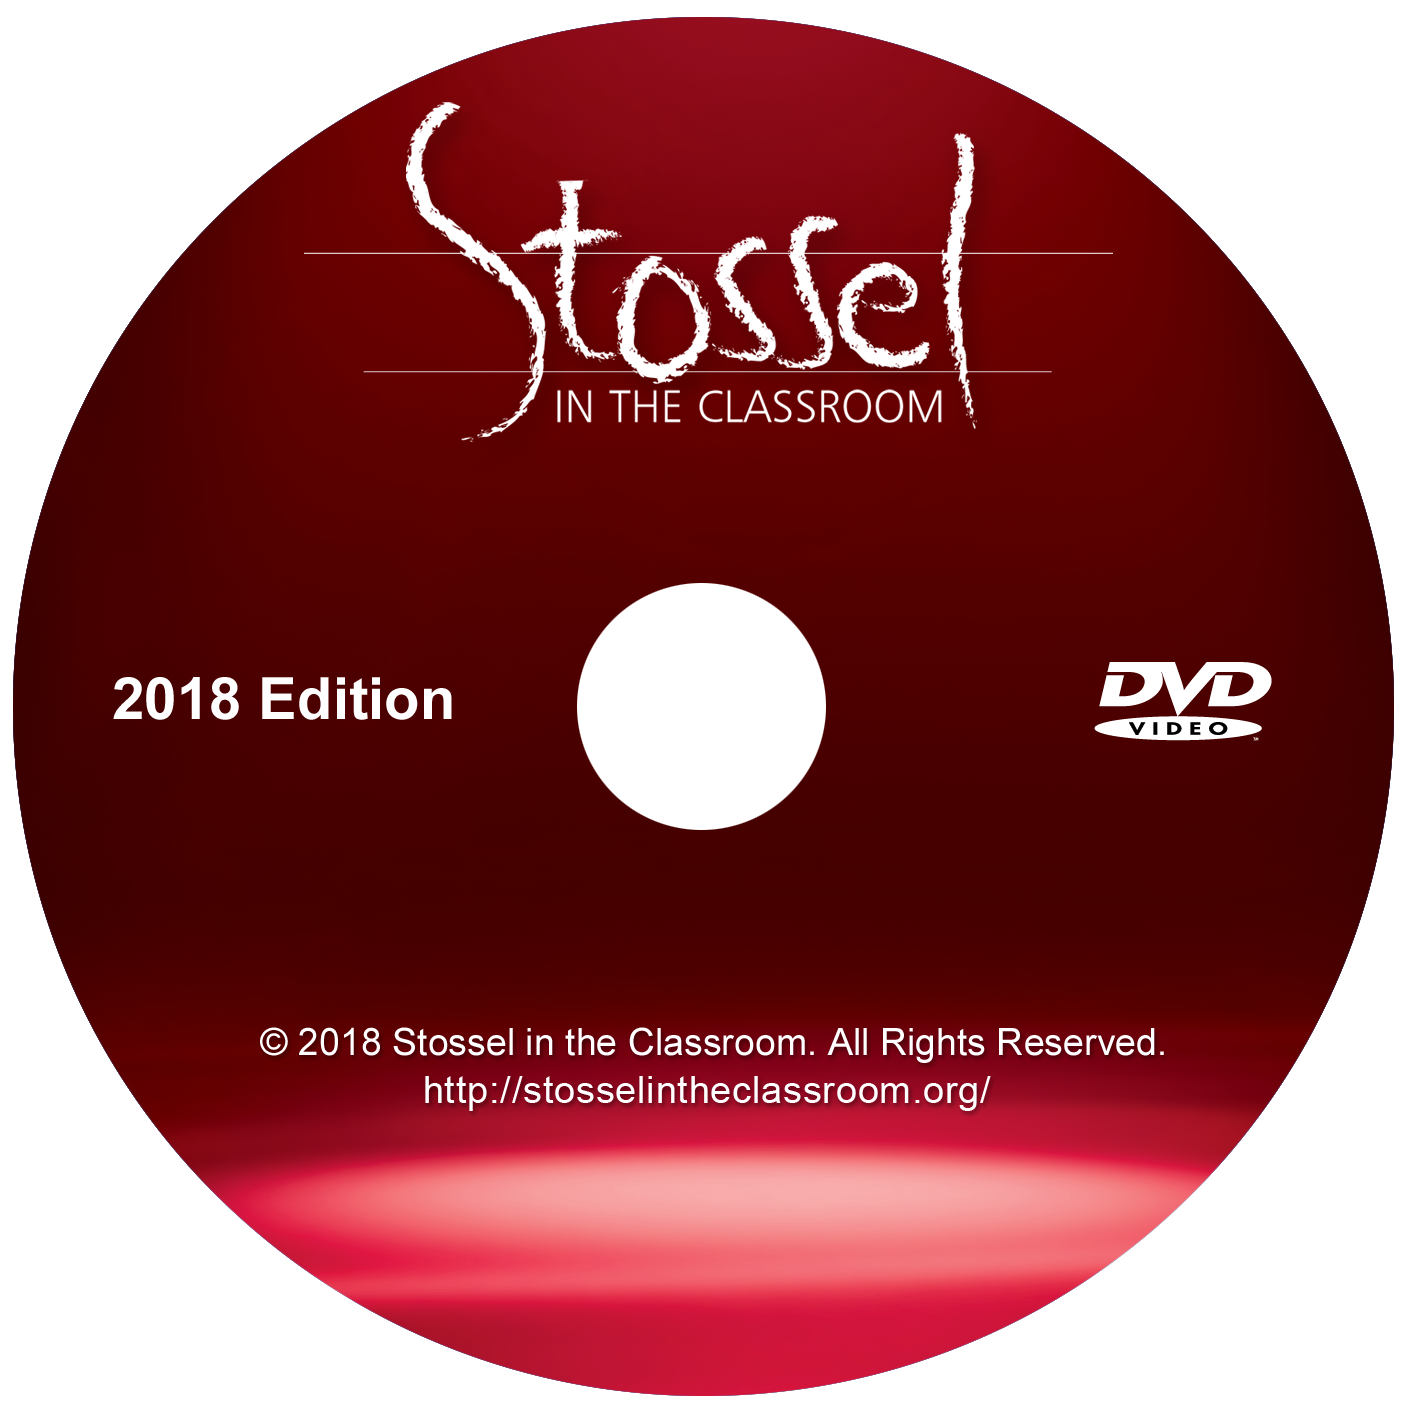 Stossel in the Classroom – 2018 Edition